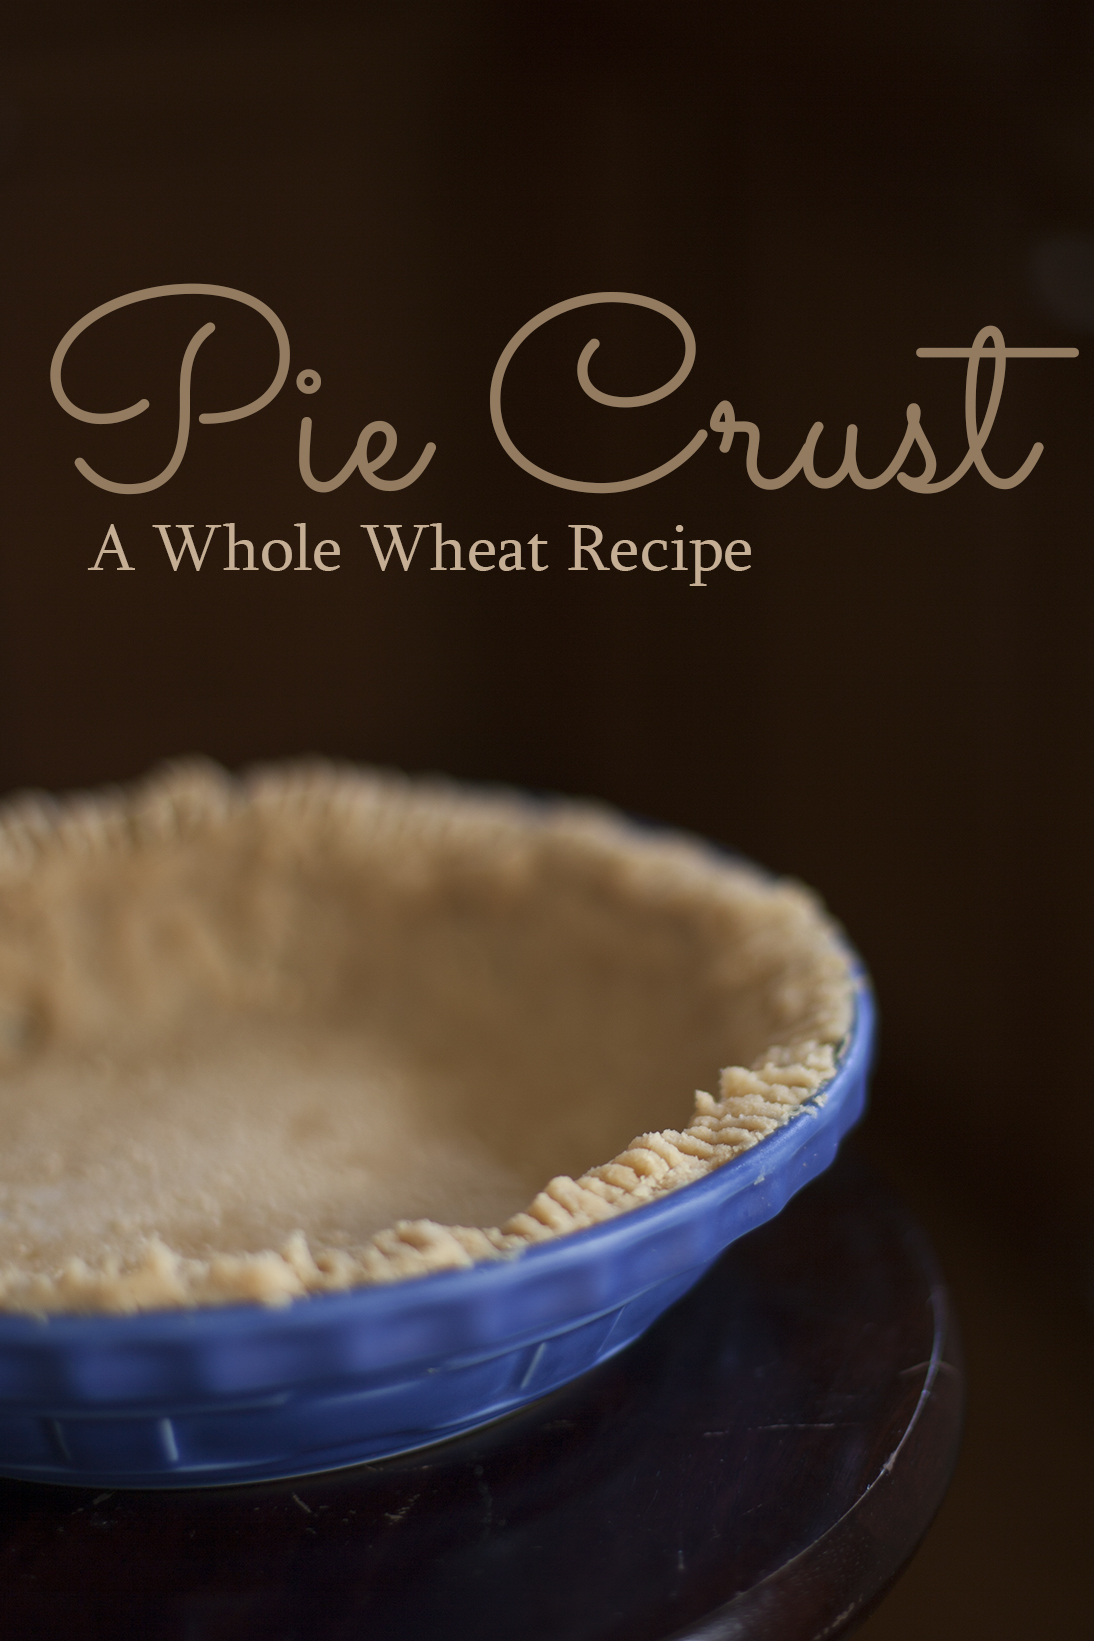 Whole wheat pastry recipe